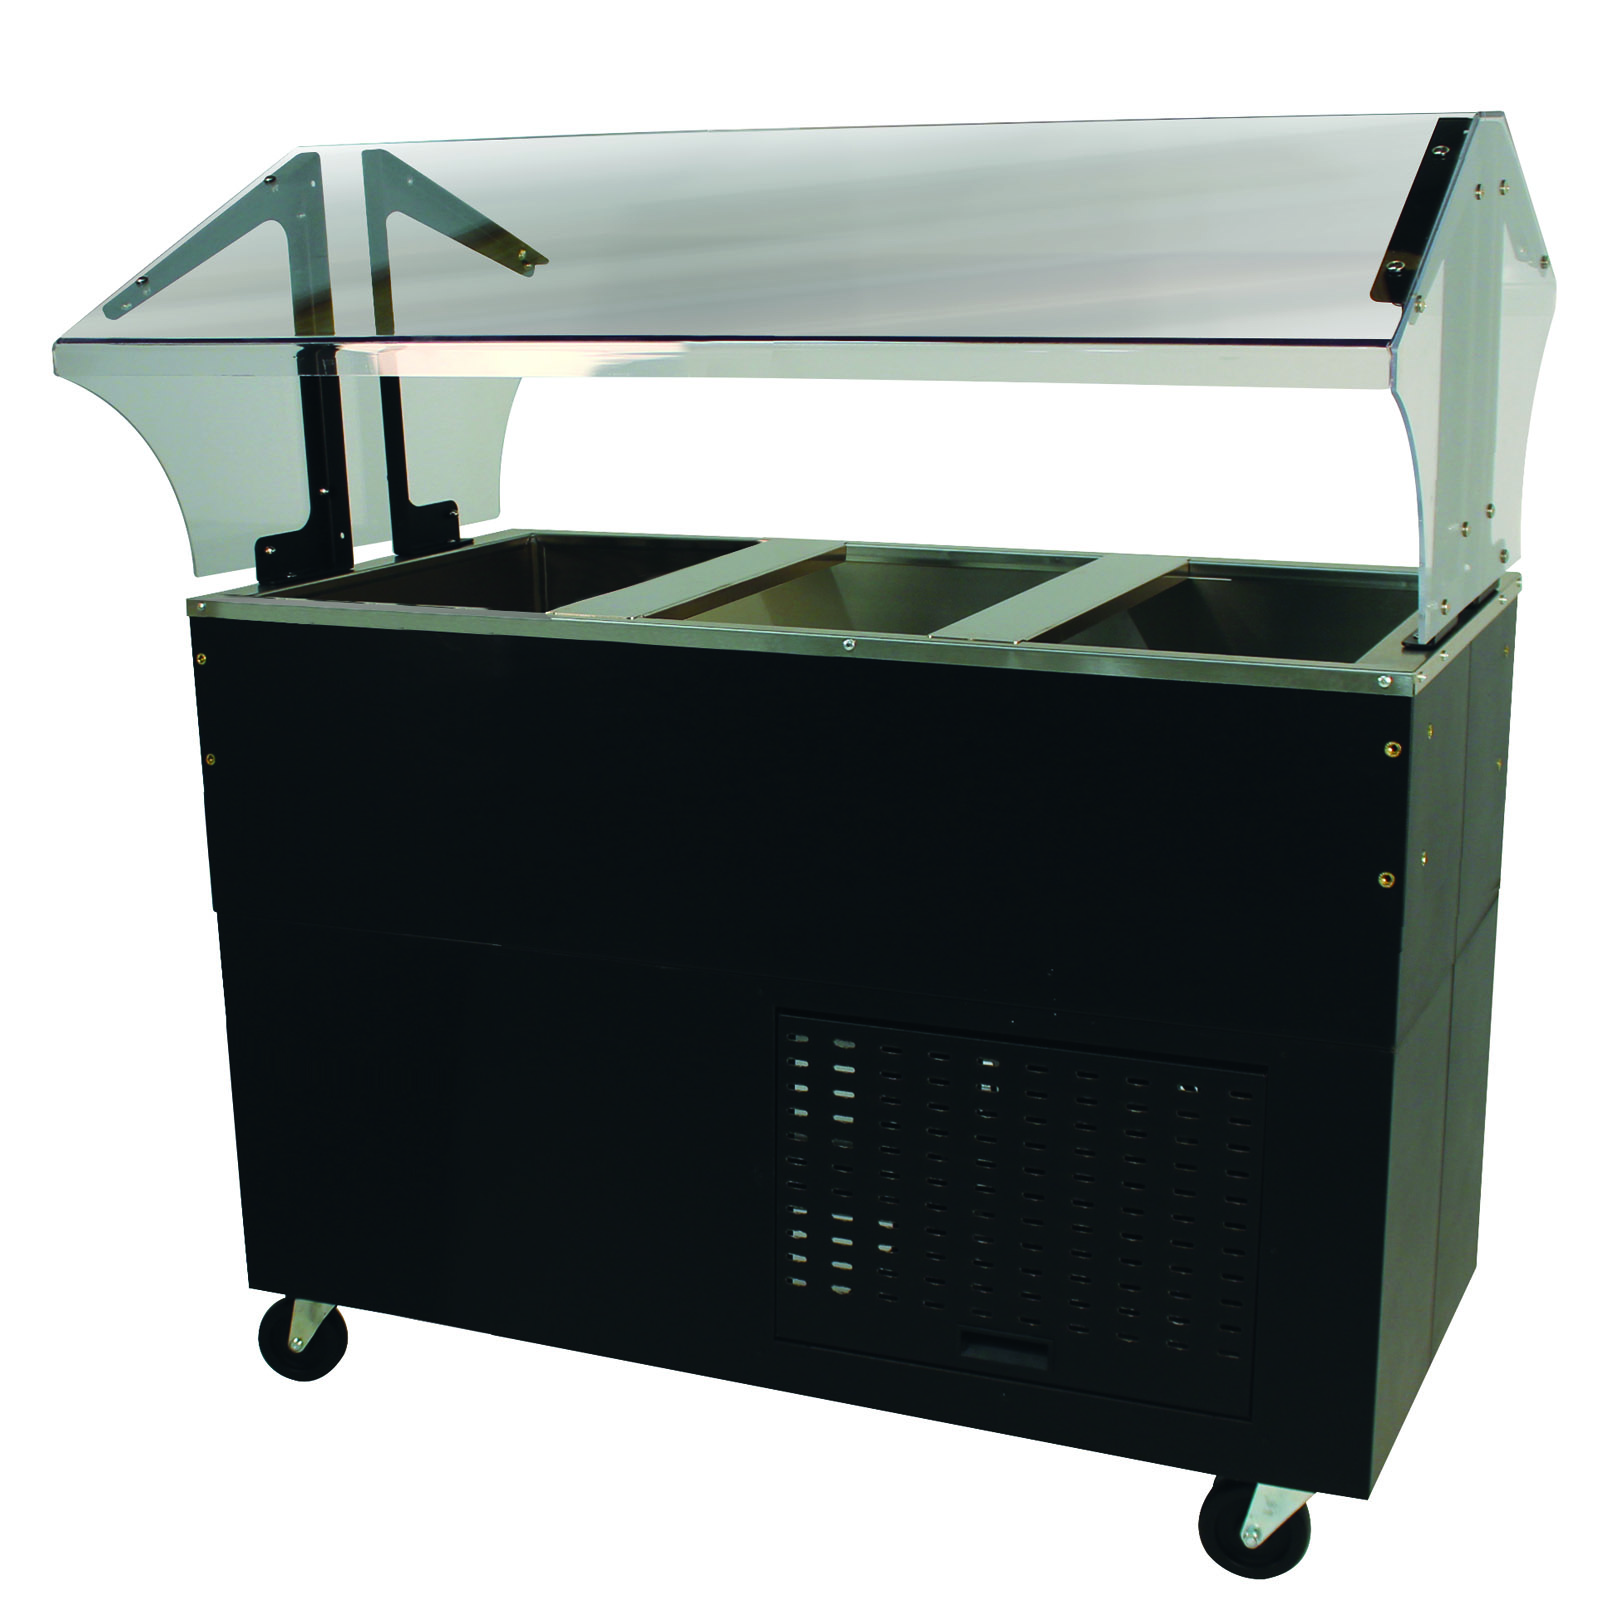 Advance Tabco BMACP3-B-SB serving counter, cold food